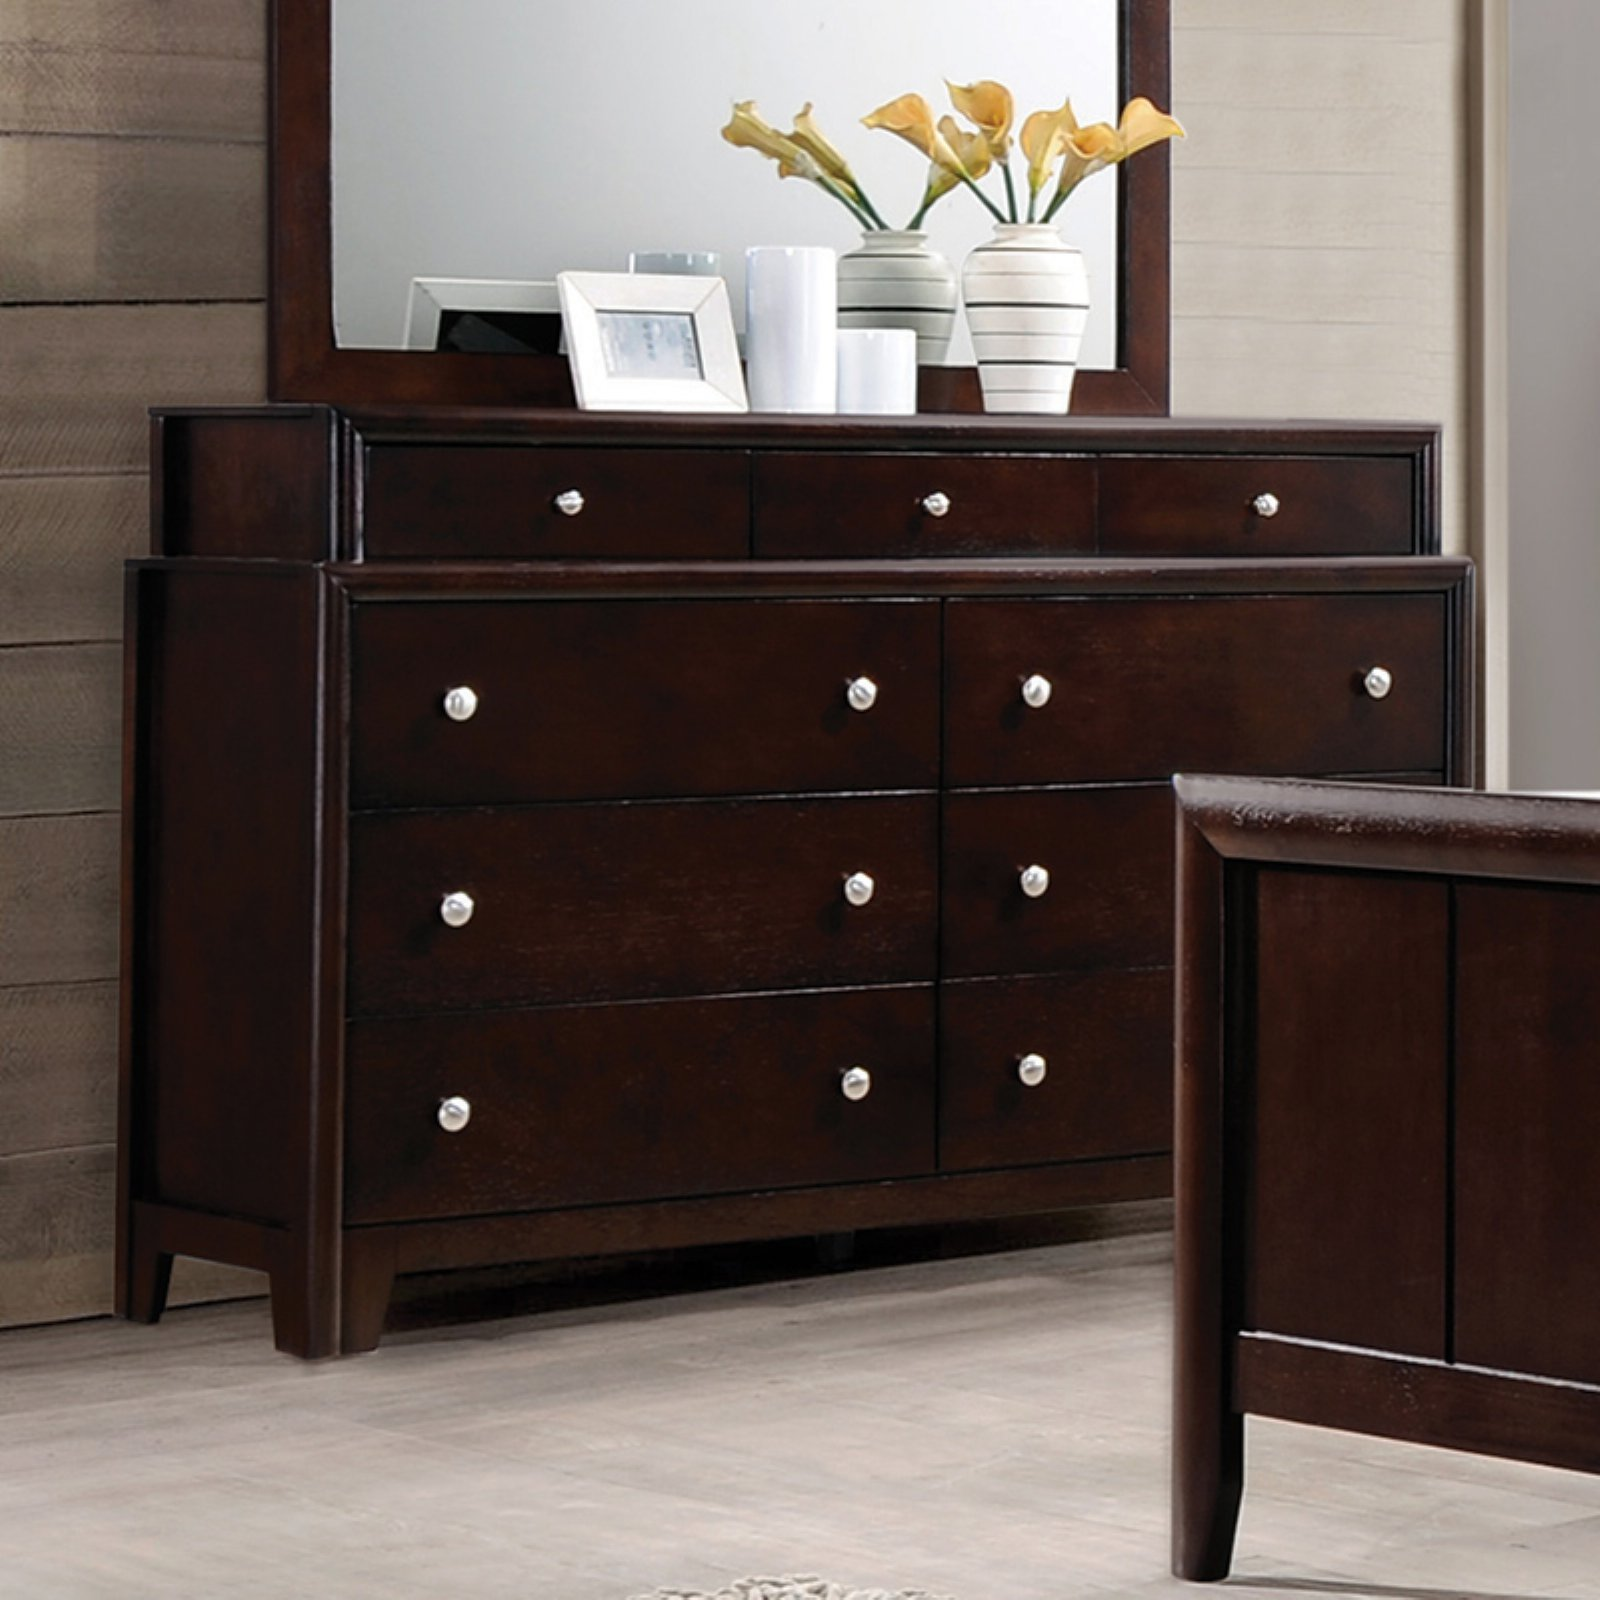 Coaster Madison Dresser, Dark Merlot